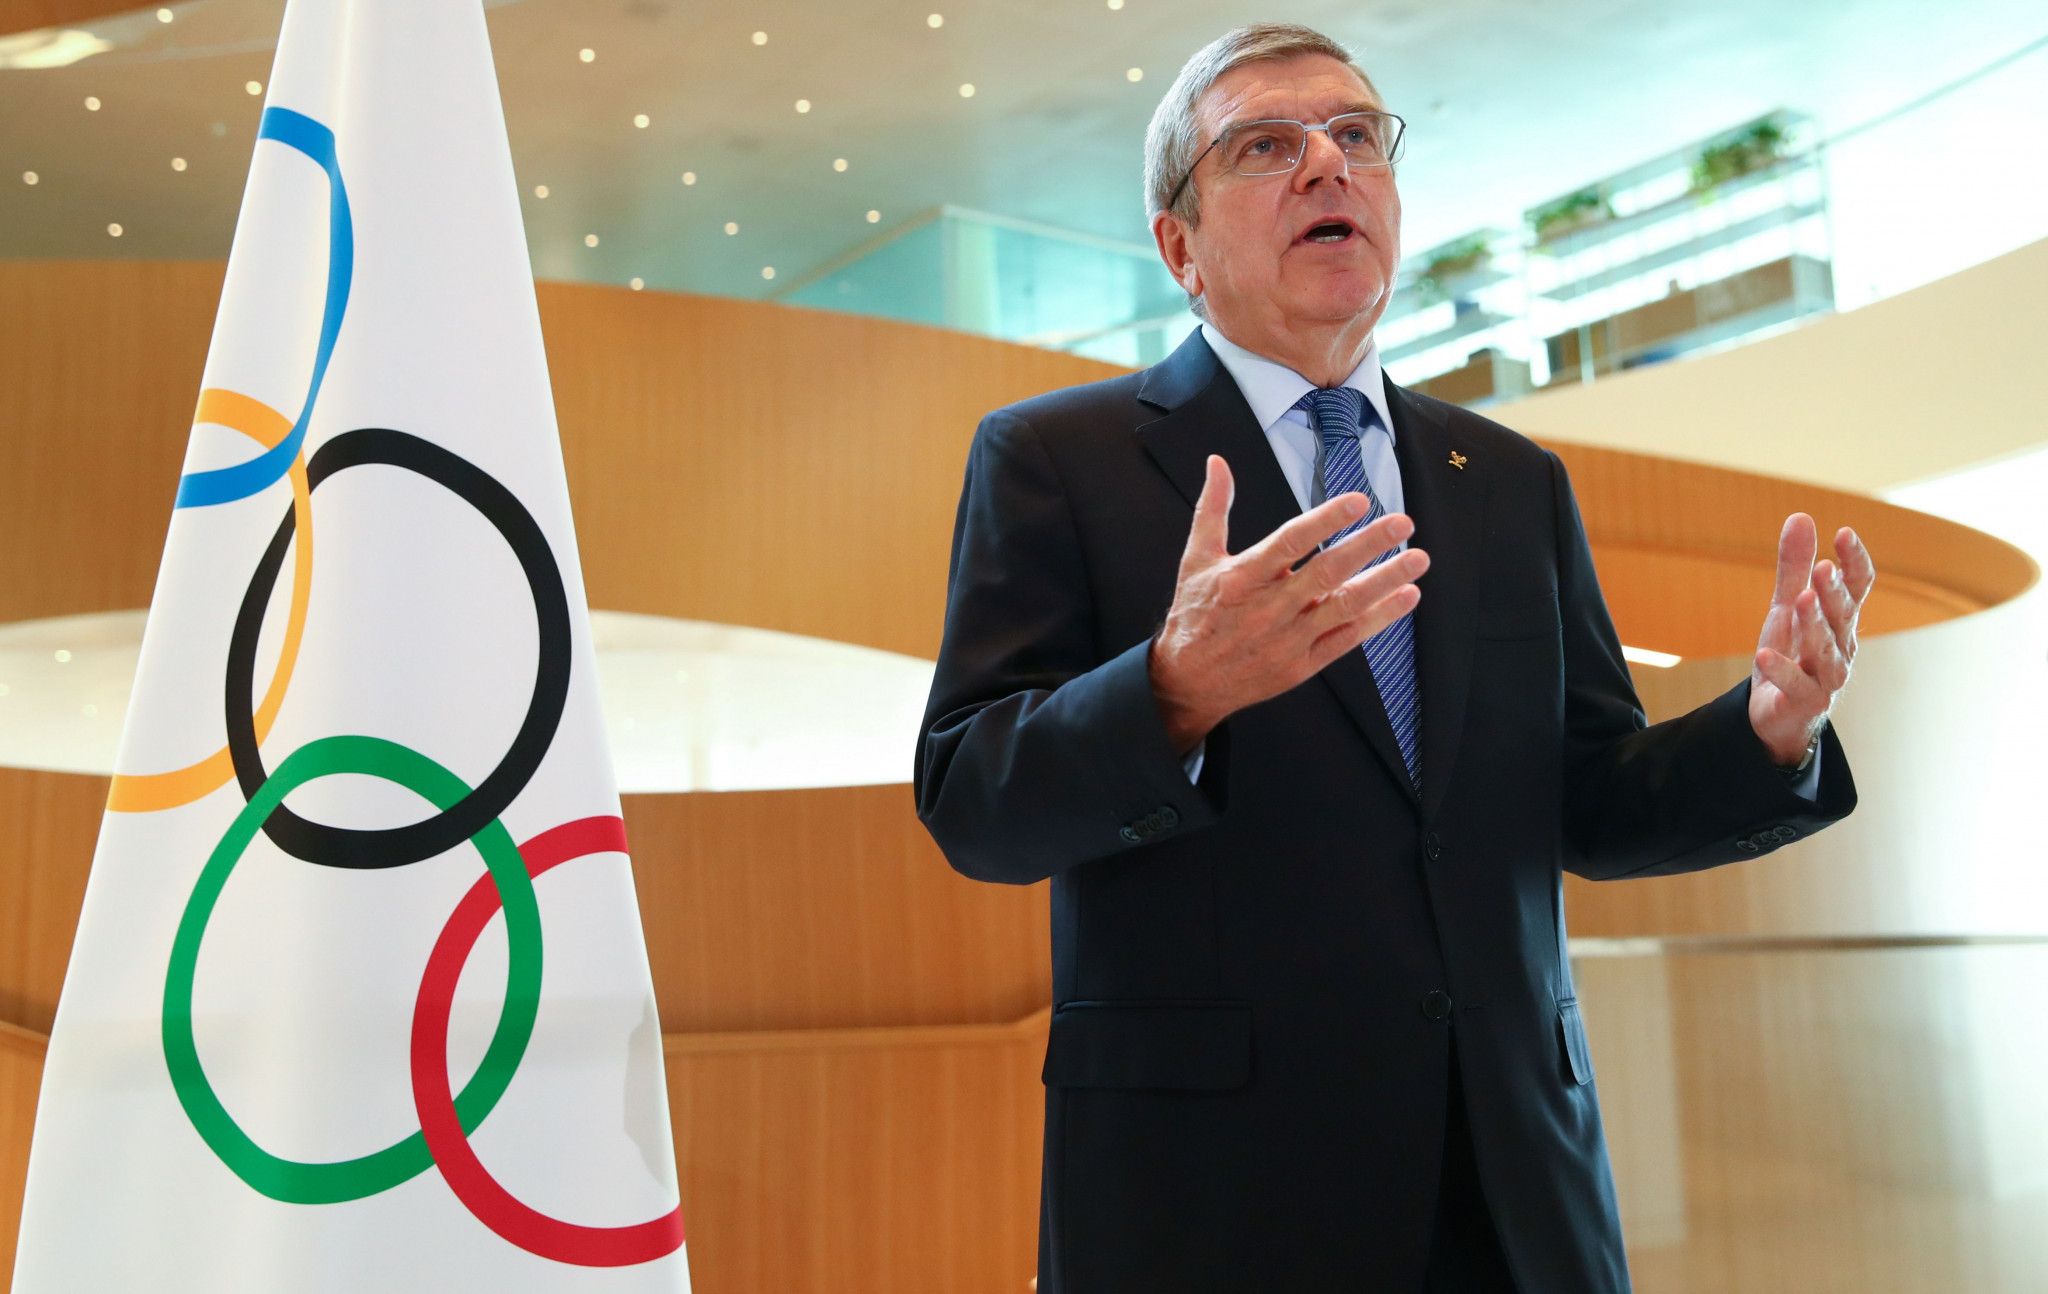 Bach acknowledges Tokyo 2020 would be cancelled if not held in 2021